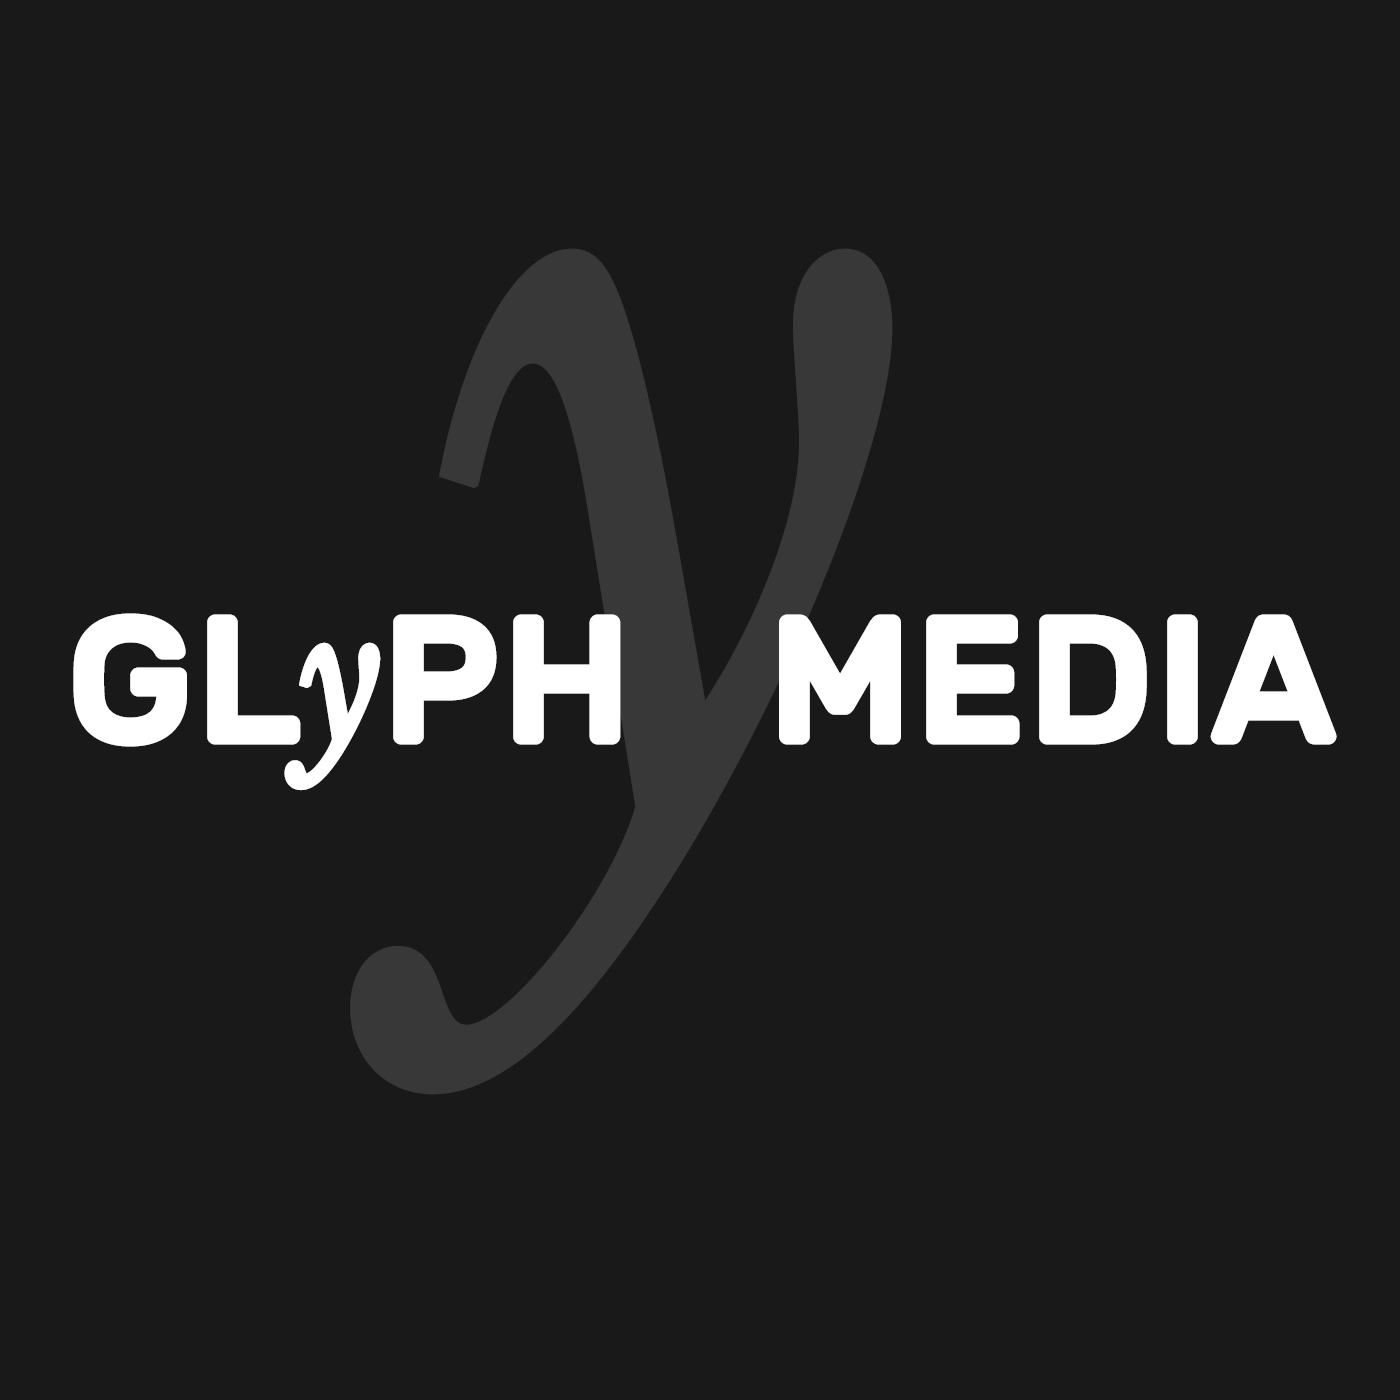 Glyph_logo_new1400.png